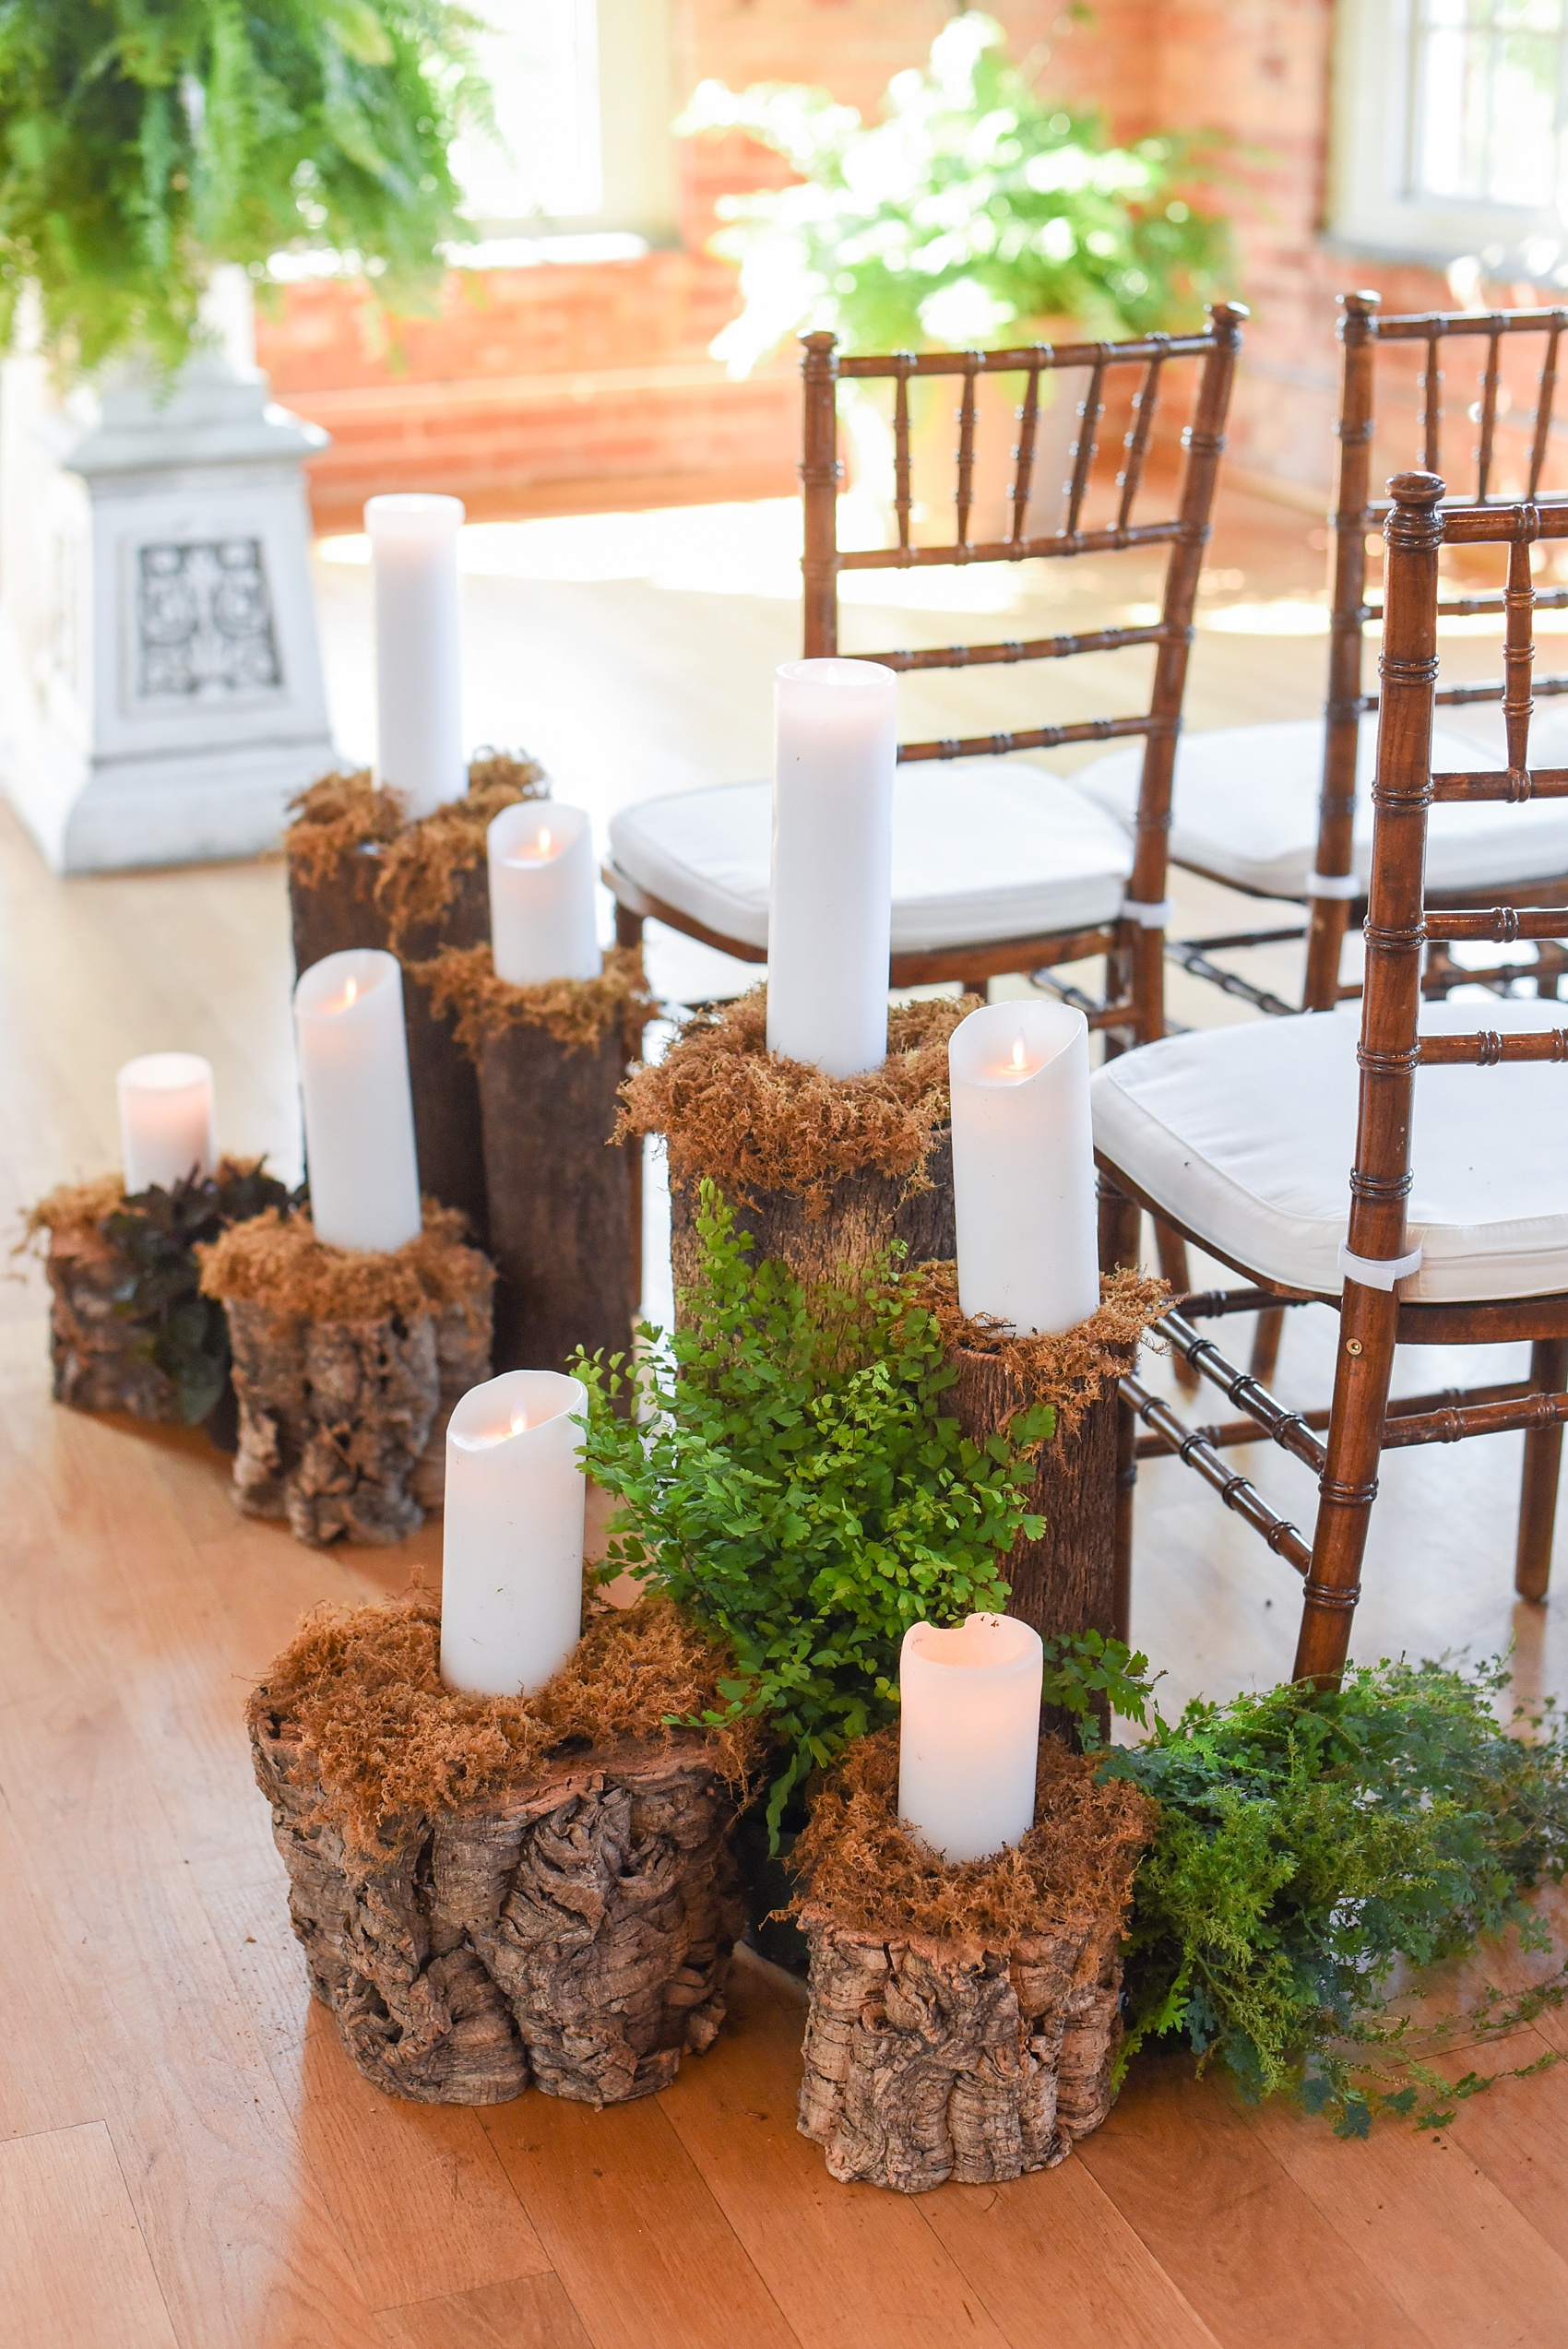 Mikkel Paige Photography image from The Cotton Room wedding venue in Durham, NC. A wooden fairy forest scene of candles and wood tree trunk stumps with moss lined the ceremony aisle.